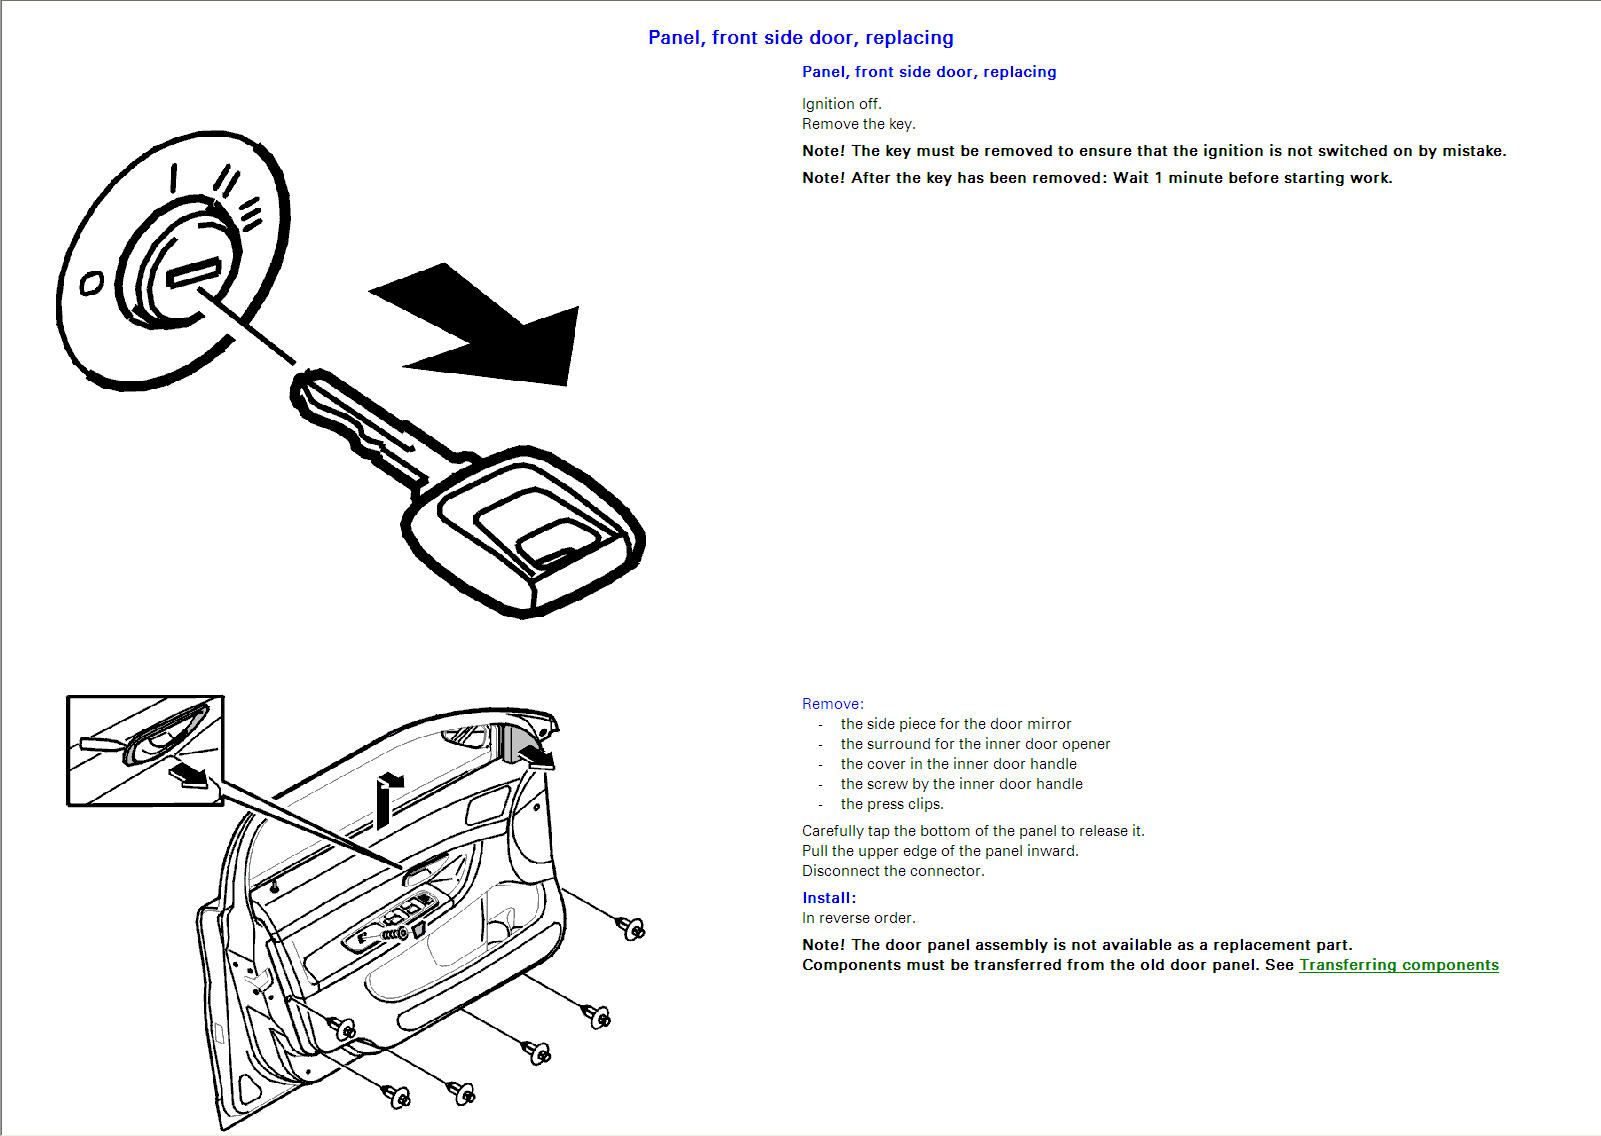 1999 Volvo S70 Fuse Box Wiring Diagram Will Be A Thing 1997 Diagrams V70 Door Parts U2022 For Free Base